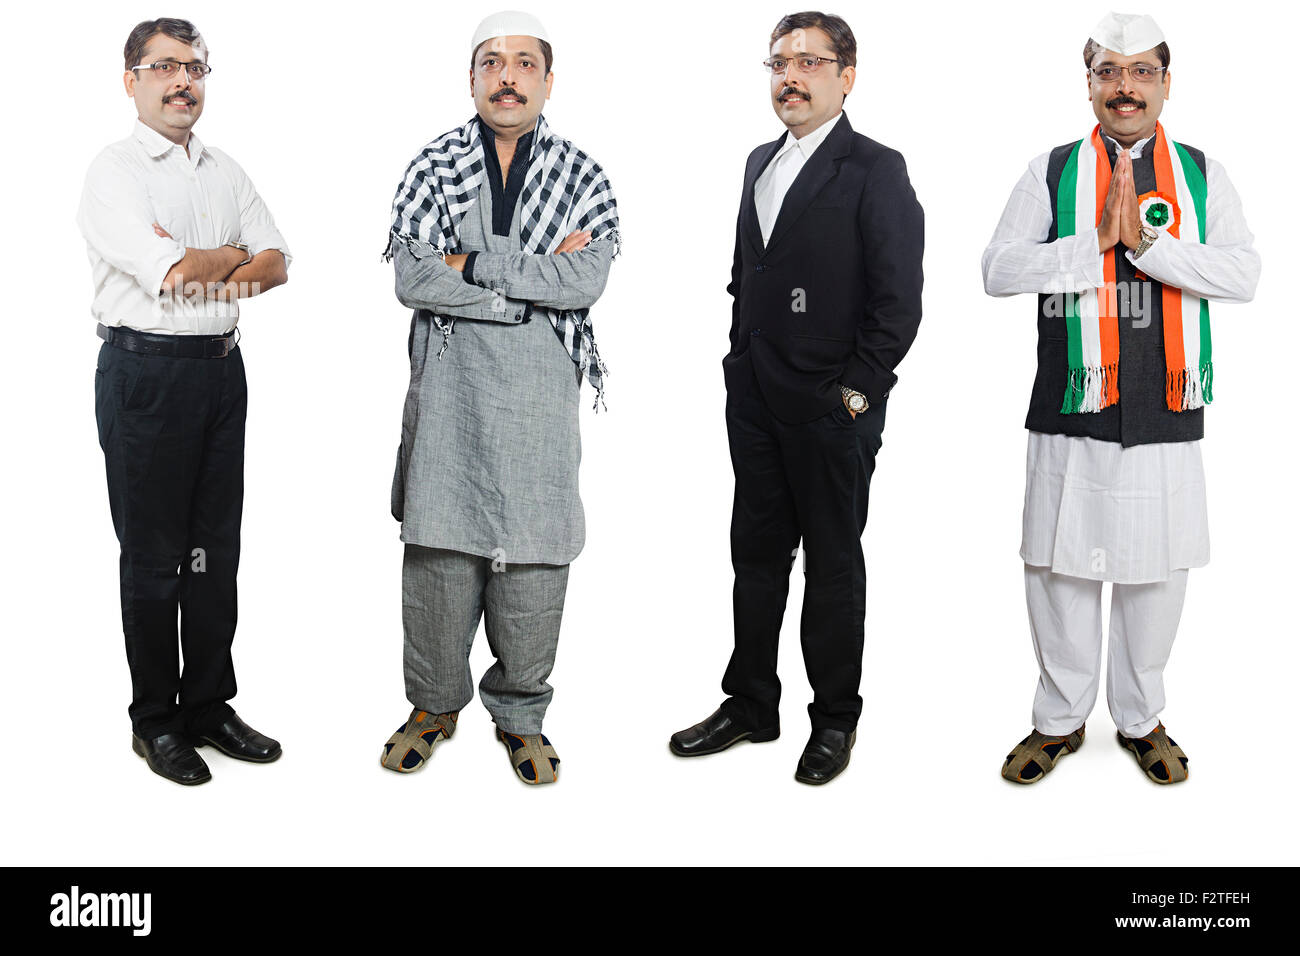 1 indian Adult Man Comparison Multiple Personality - Stock Image